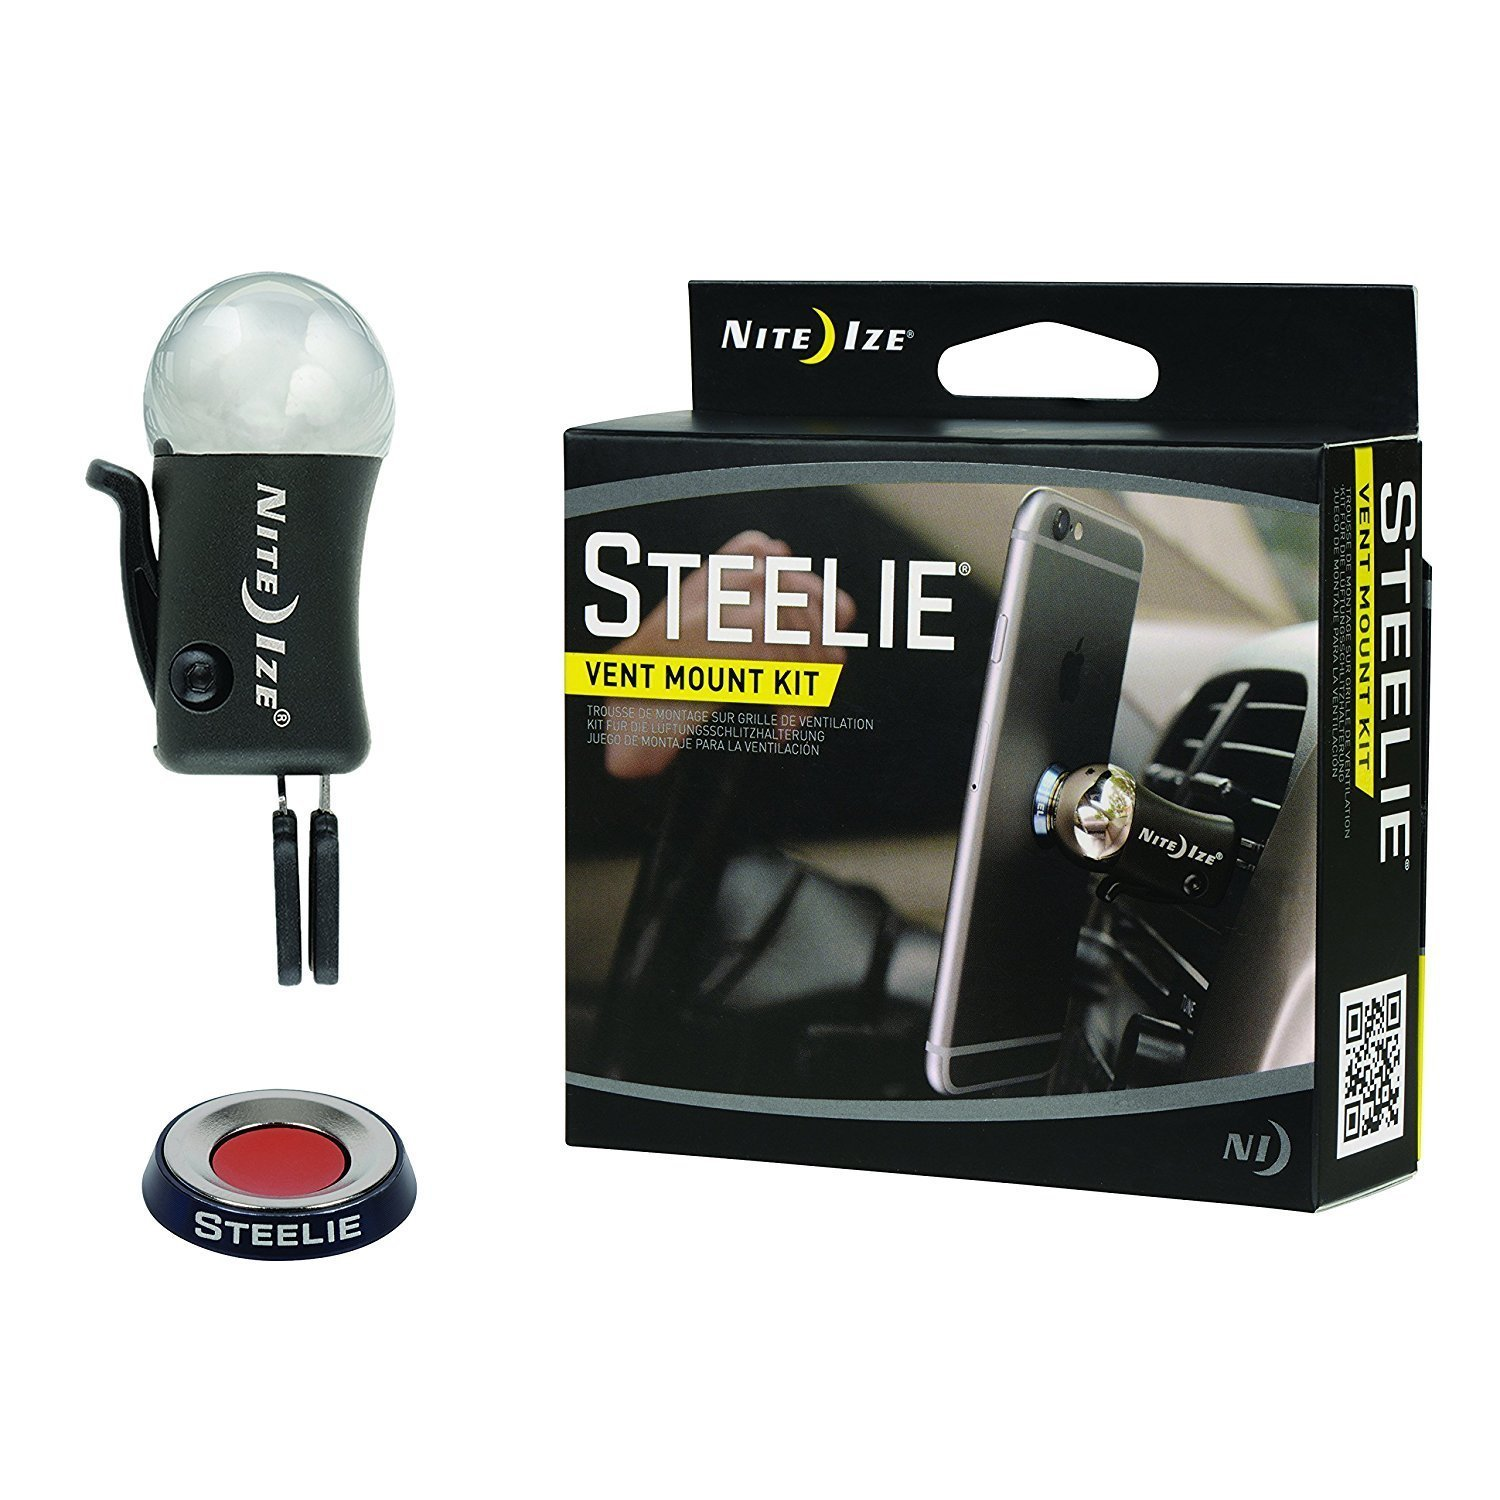 Nite Ize Original Steelie Vent Mount Kit-  Magnetic  Car Vent Mount for Smartphones by Nite Ize (Image #1)